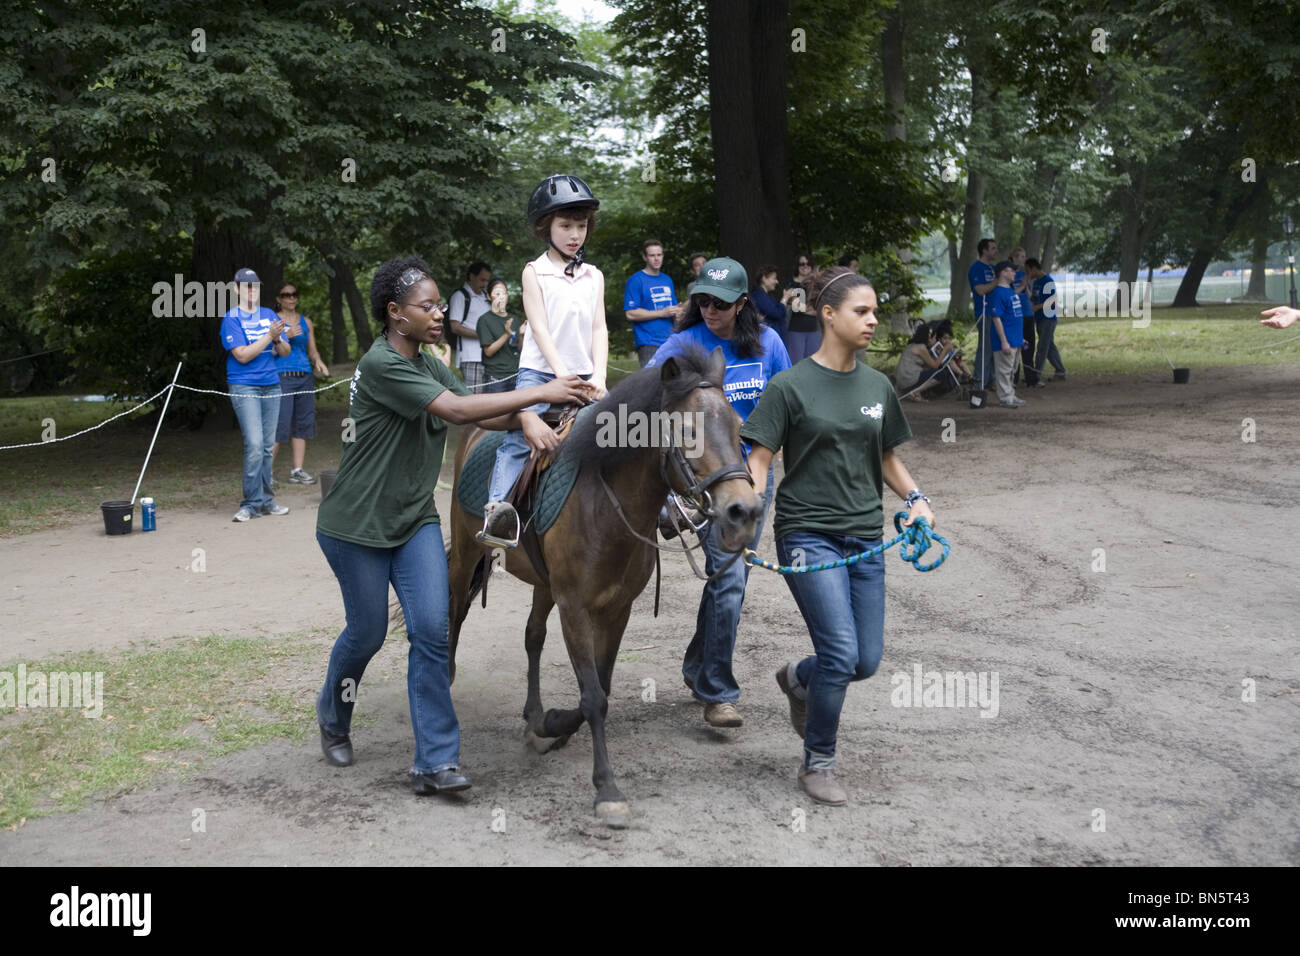 Disabled children receive developmental therapy learning to ride horses, known as Hippotherapy. - Stock Image